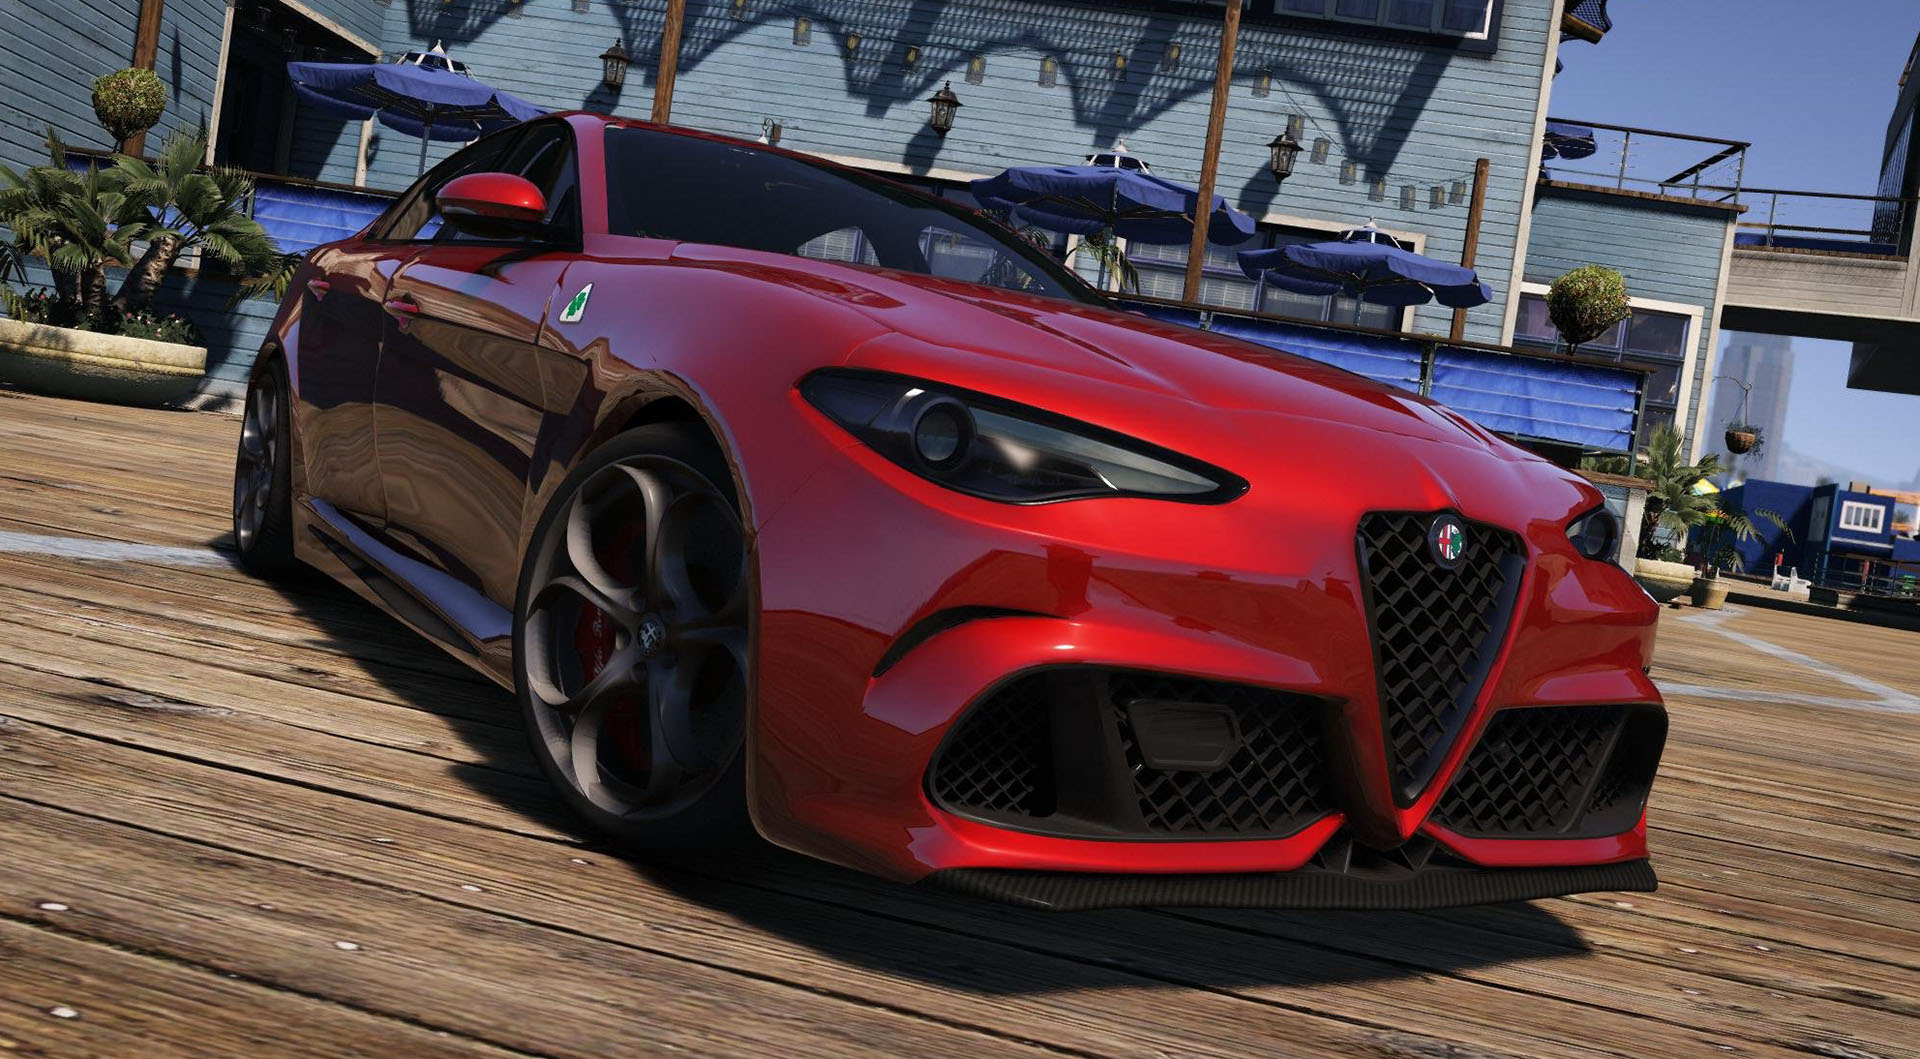 alfa romeo giulia quadrifoglio 2016 v hicules t l chargements gta 5. Black Bedroom Furniture Sets. Home Design Ideas